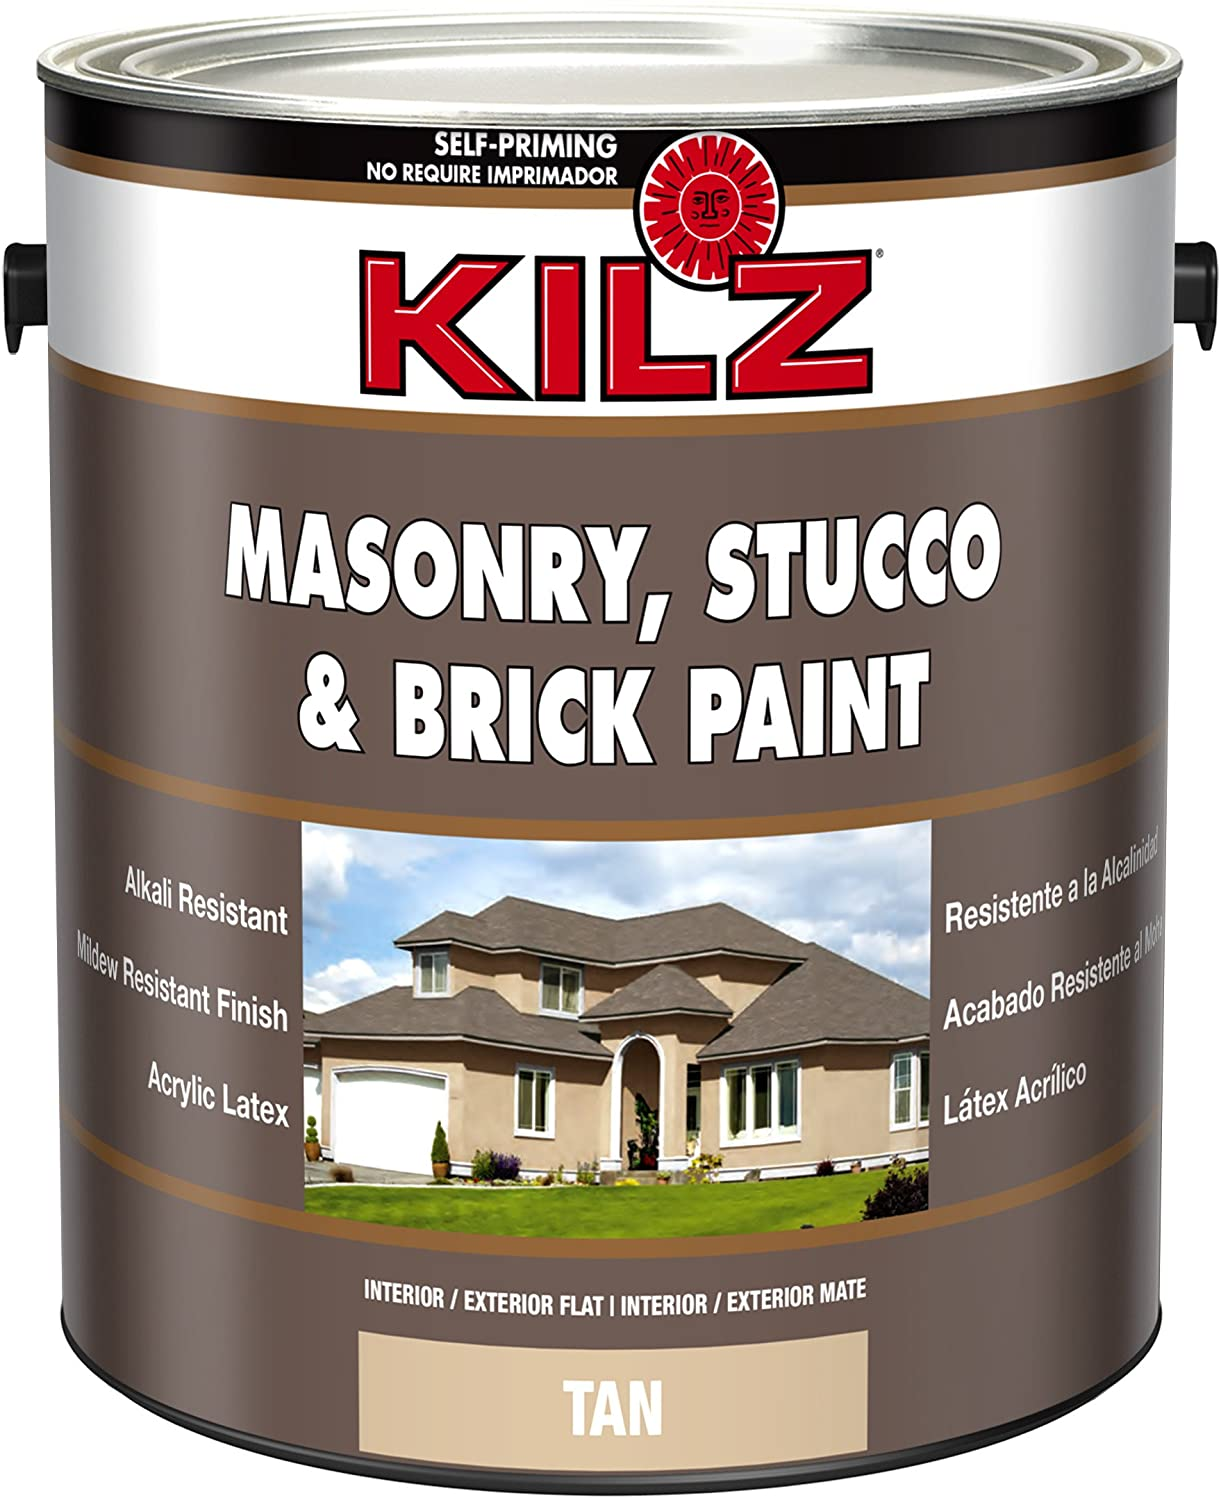 Kilz Masonry, Stucco, Brick Paint in Tan review